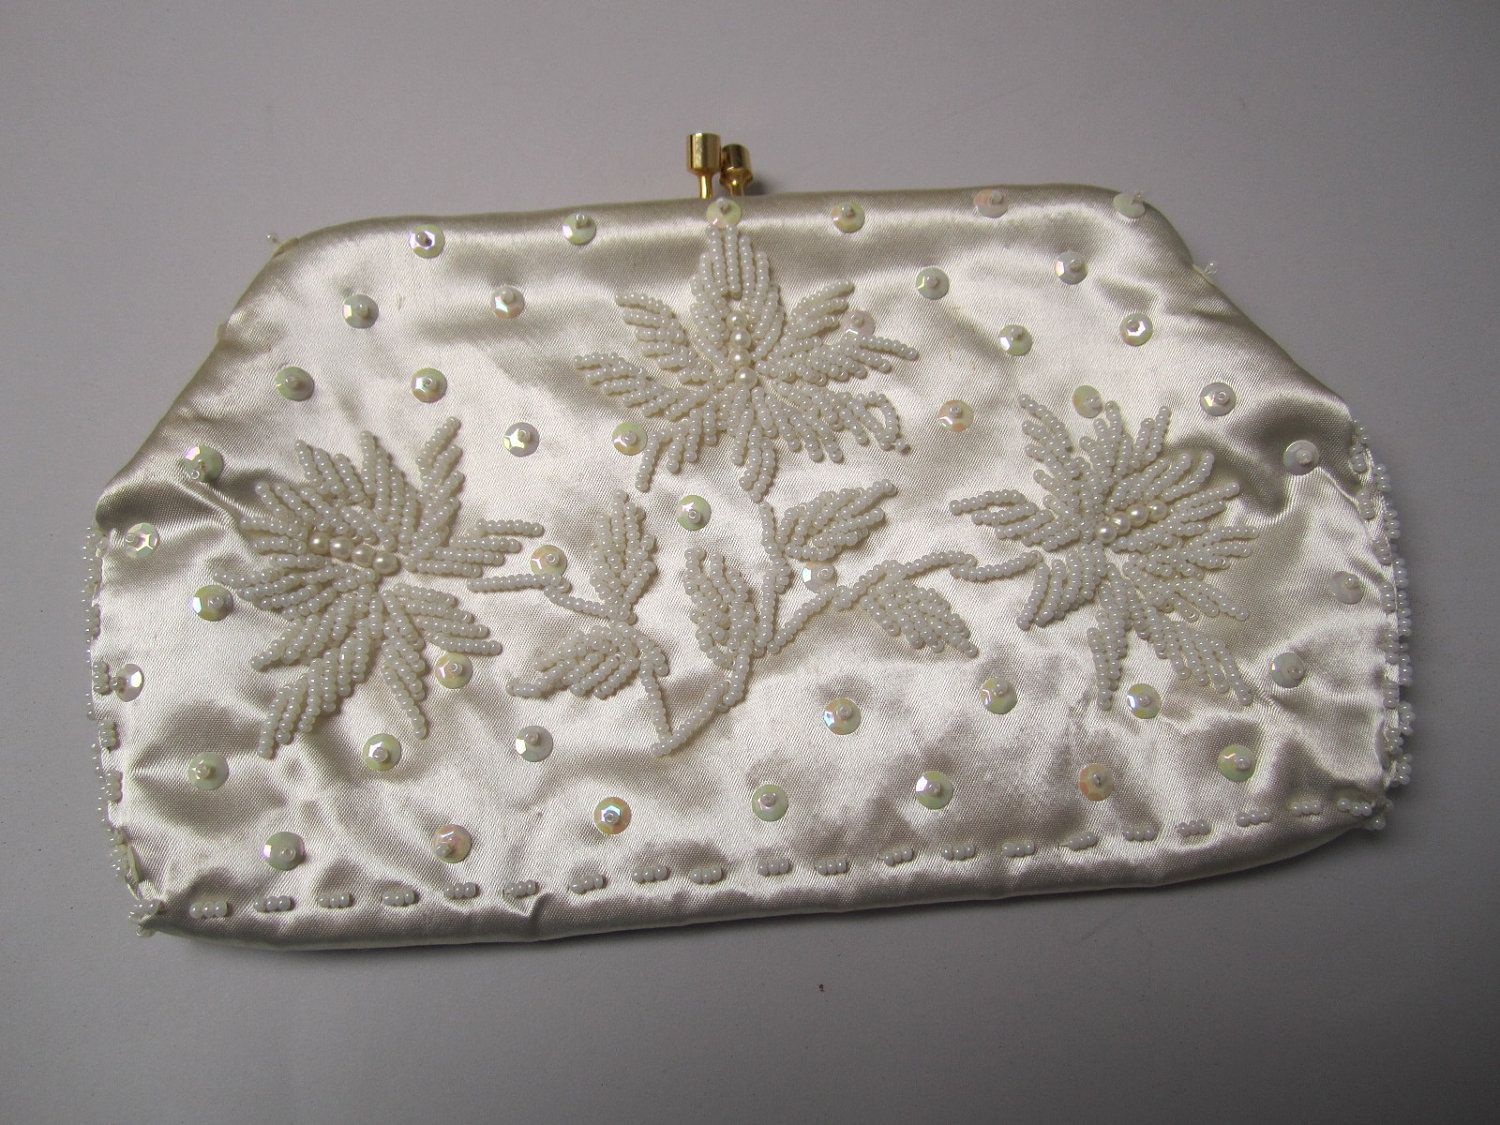 Vintage 1950s clutch purse white beaded satin evening bag hand made hong  kong bridal bag with chain handle.  12.99 f2b062c7fc48e